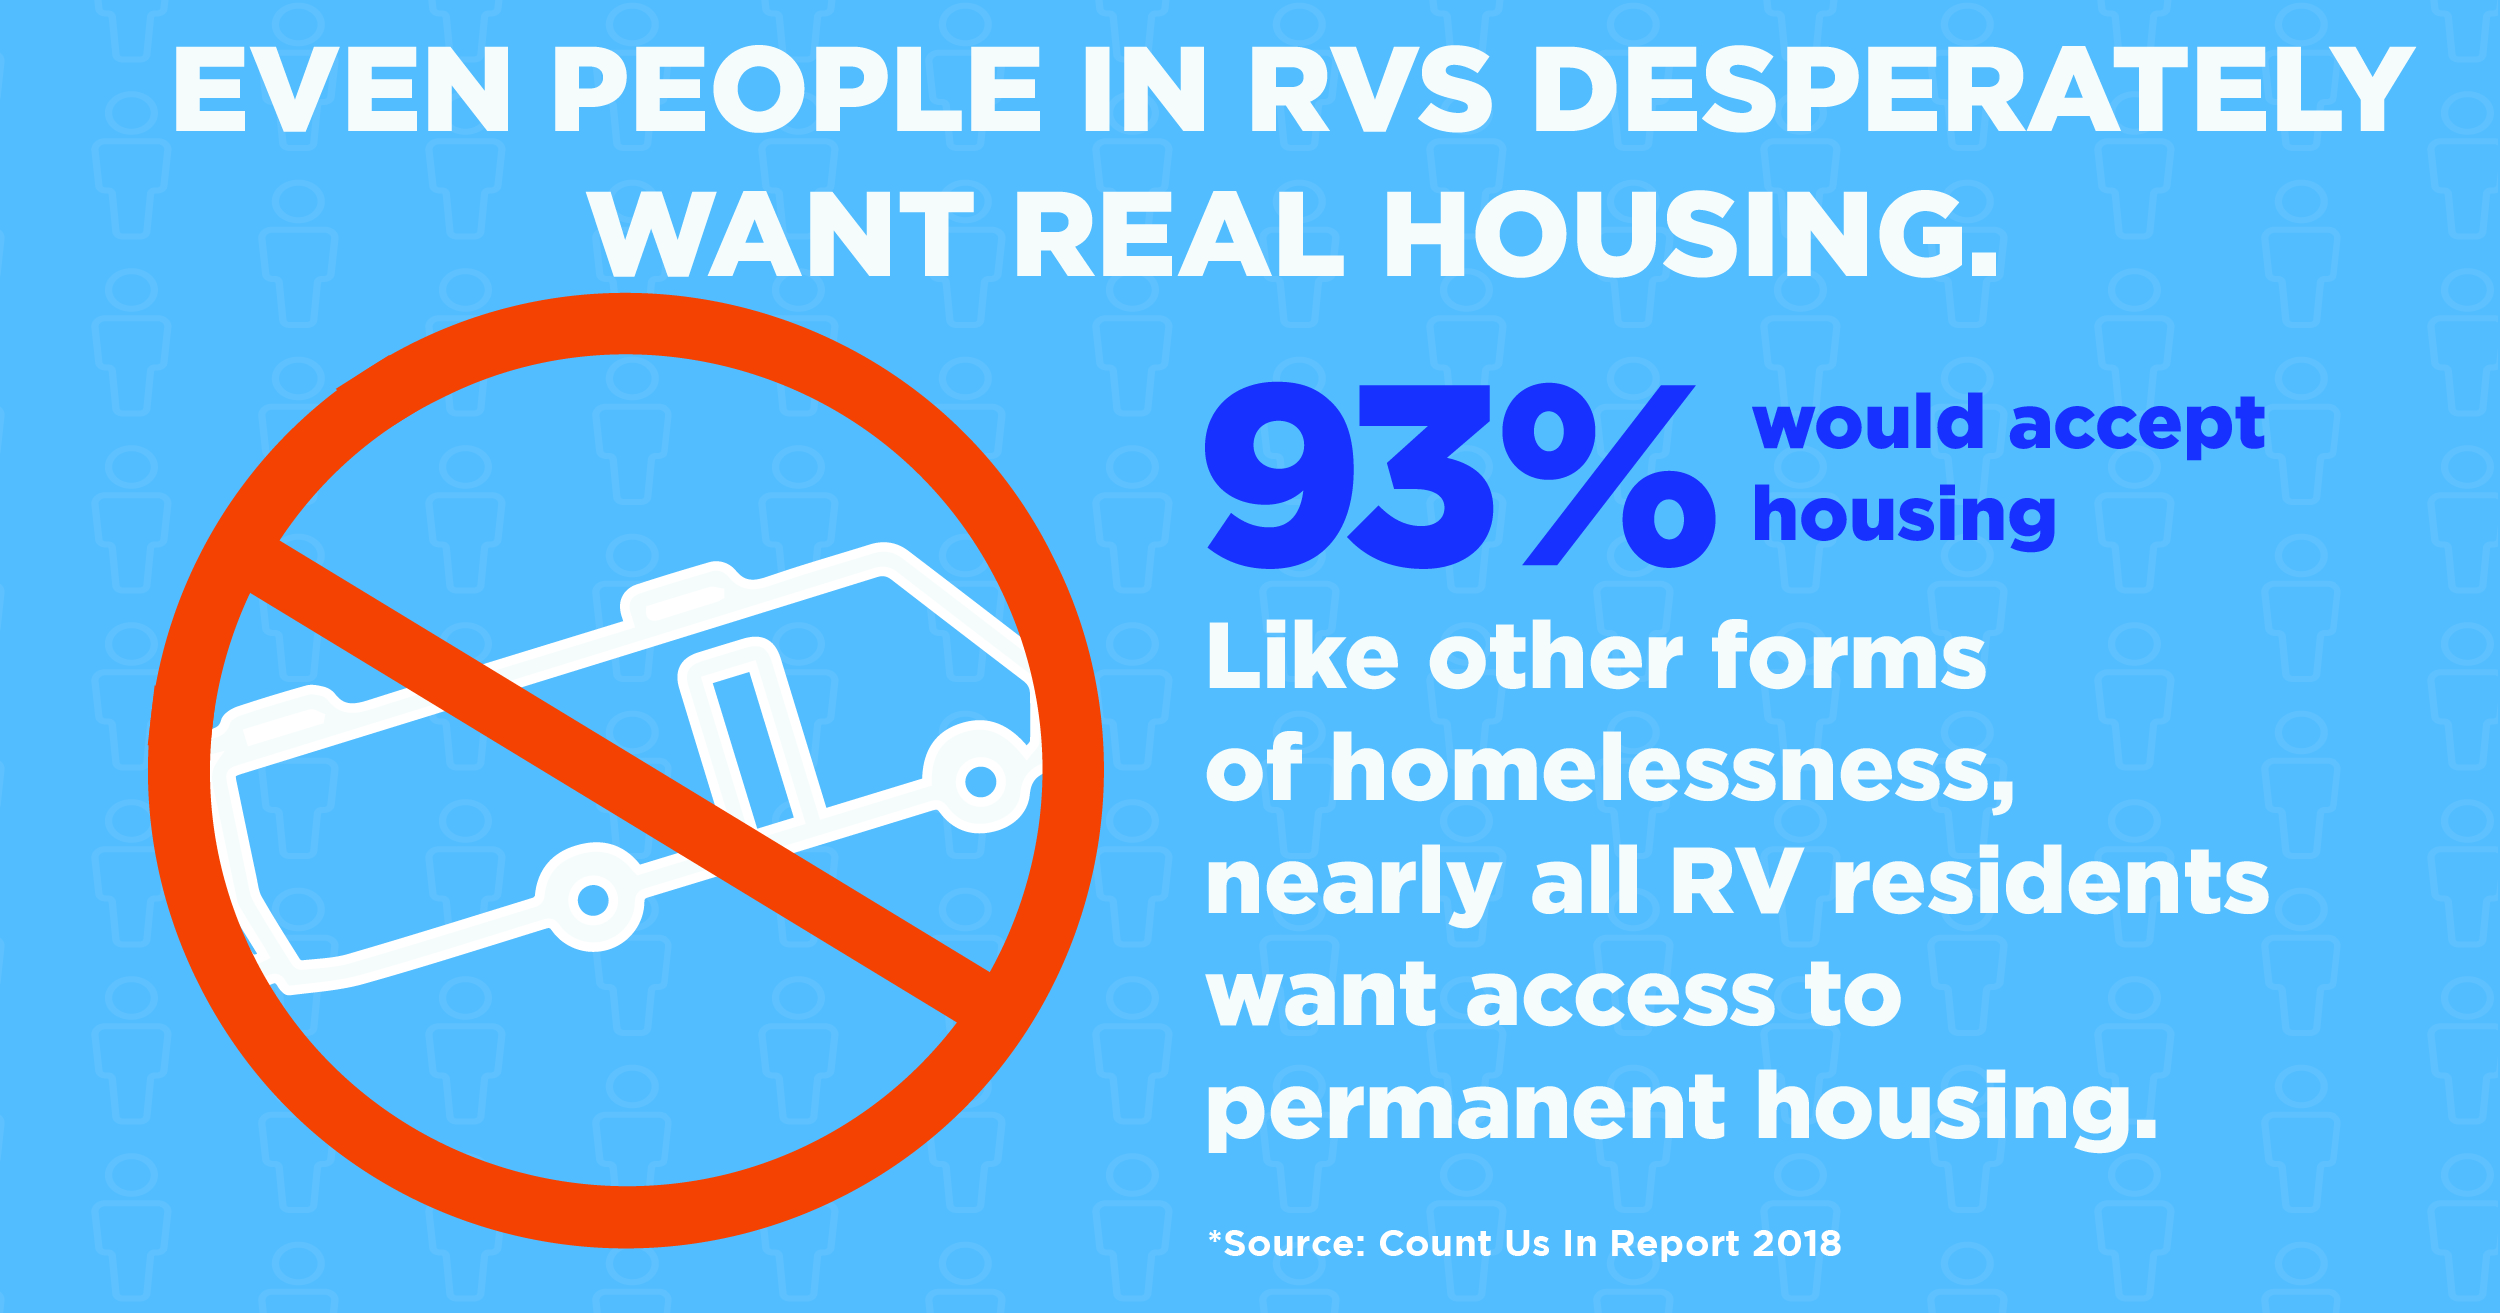 Virtually the same percent, 93%, of people in RVs want real housing as other people experiencing homelessness